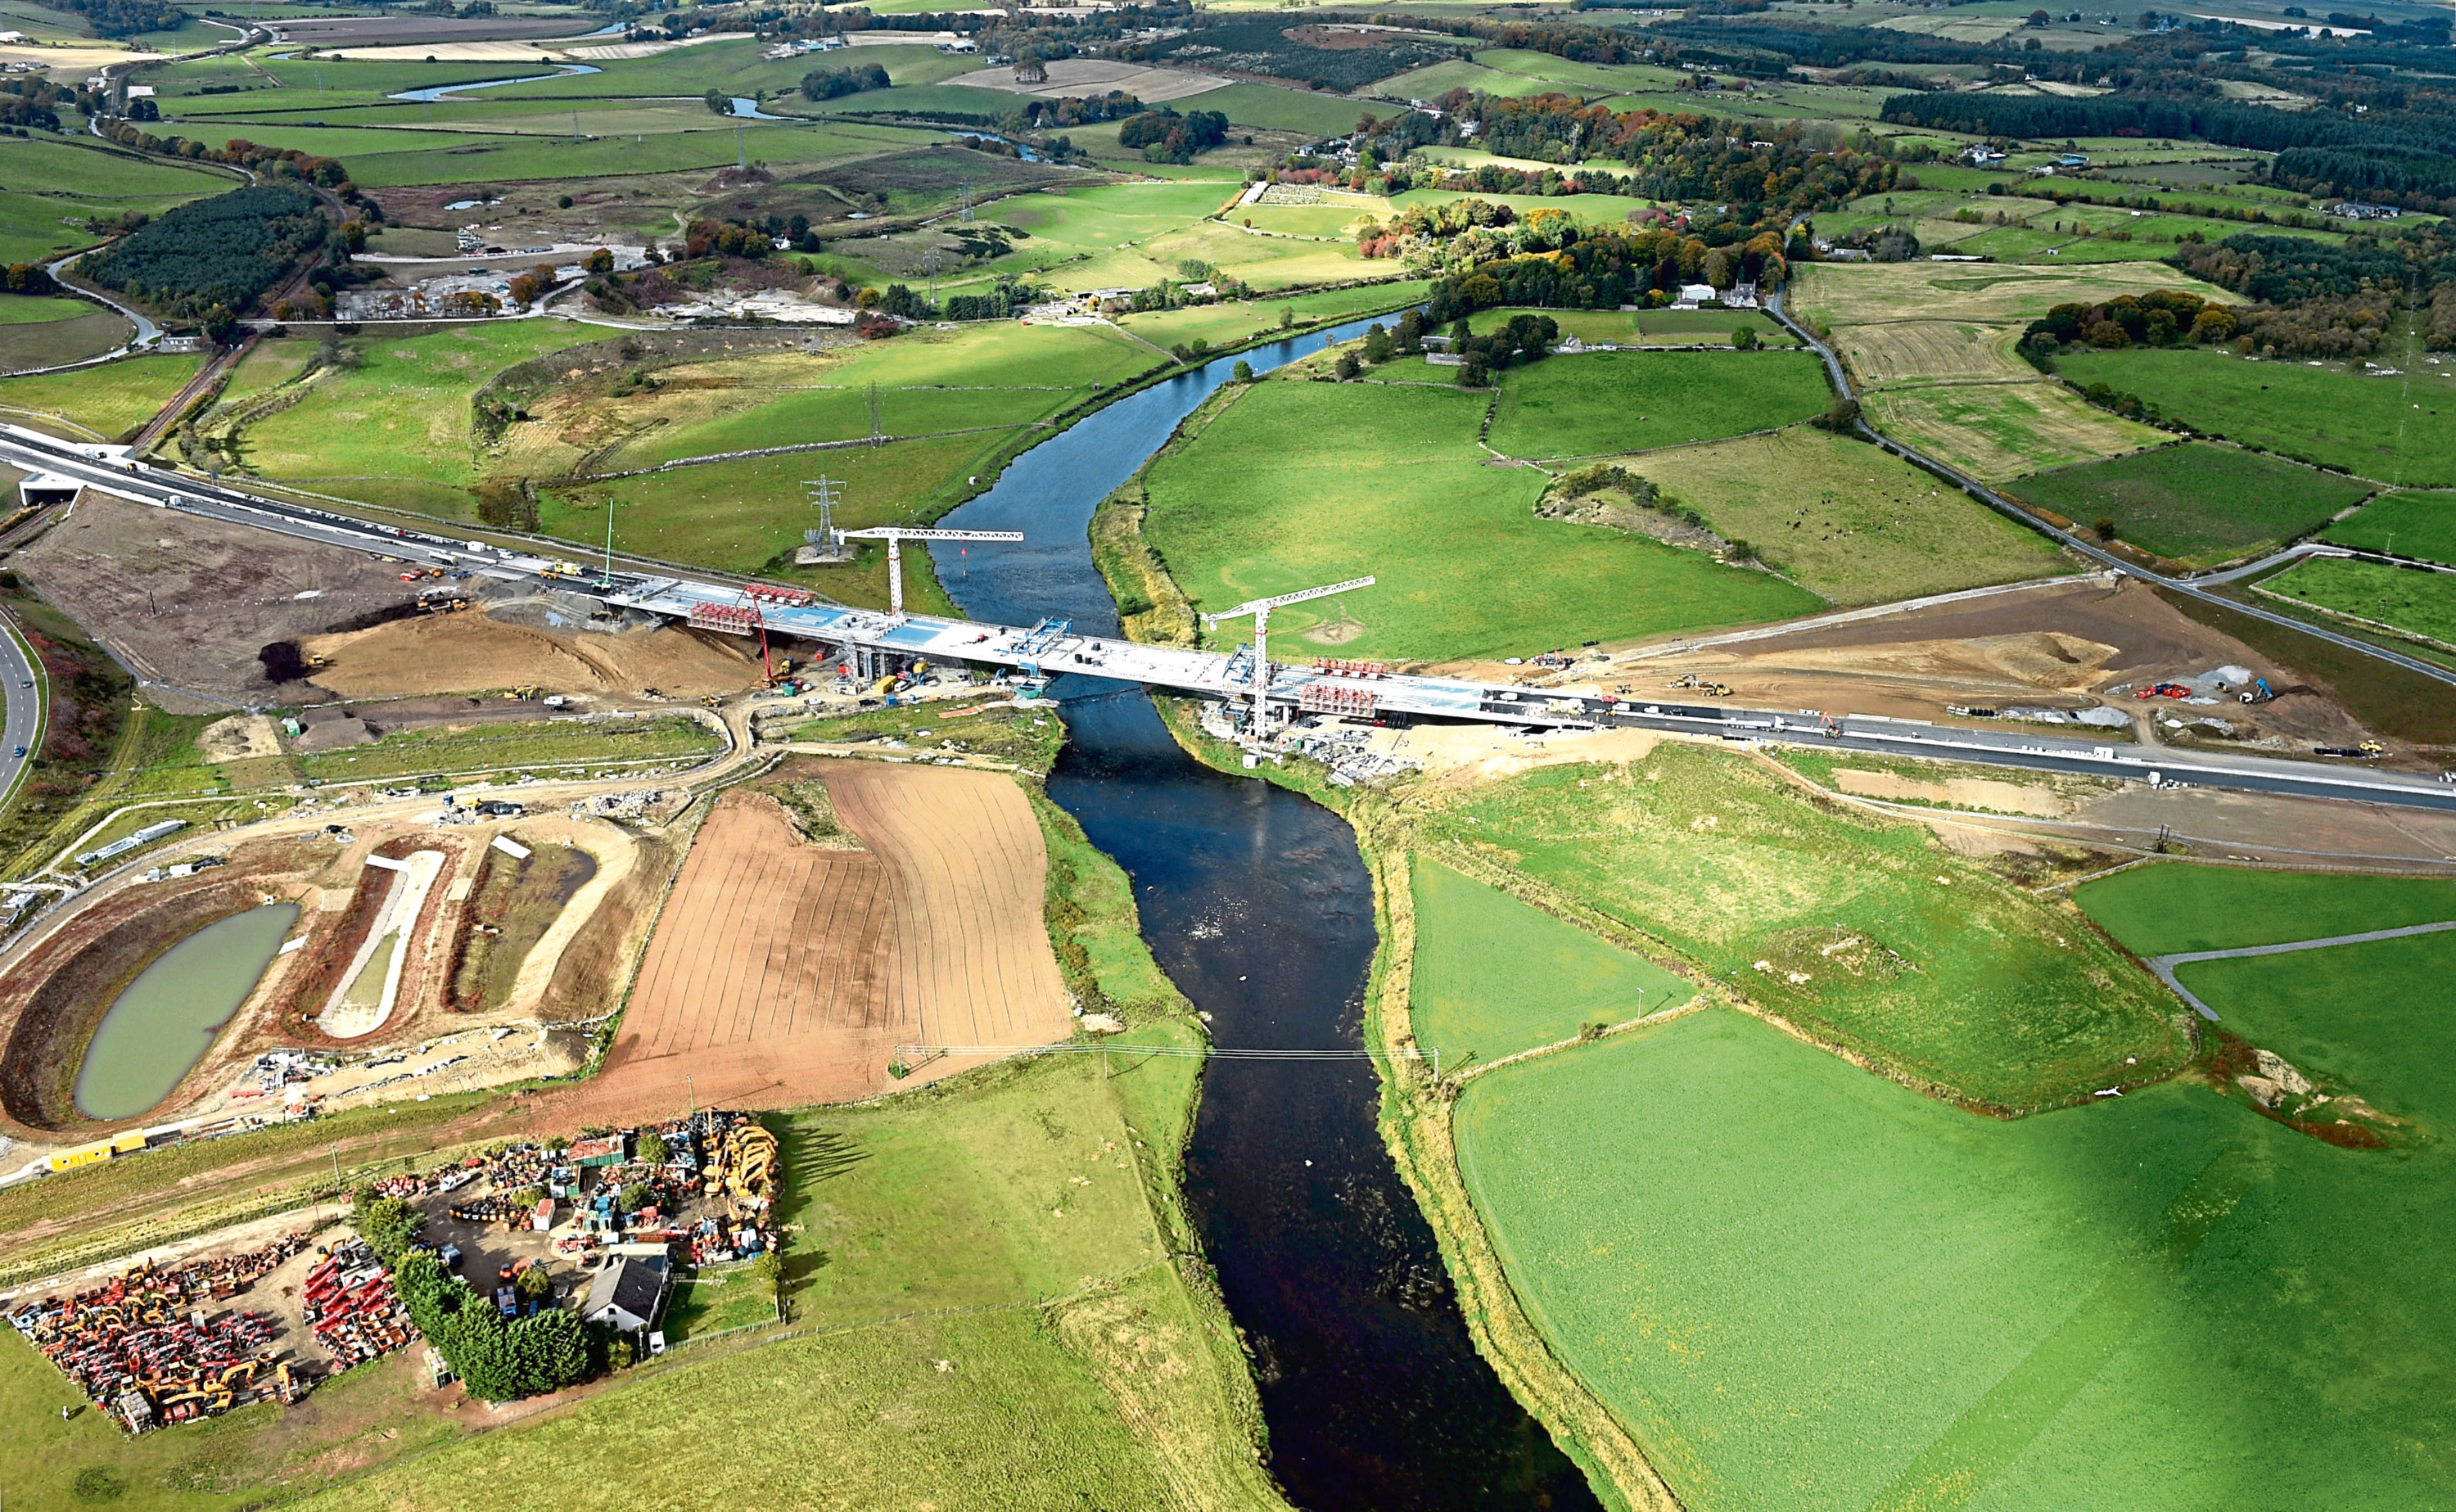 The new bridge at Dyce over the River Don